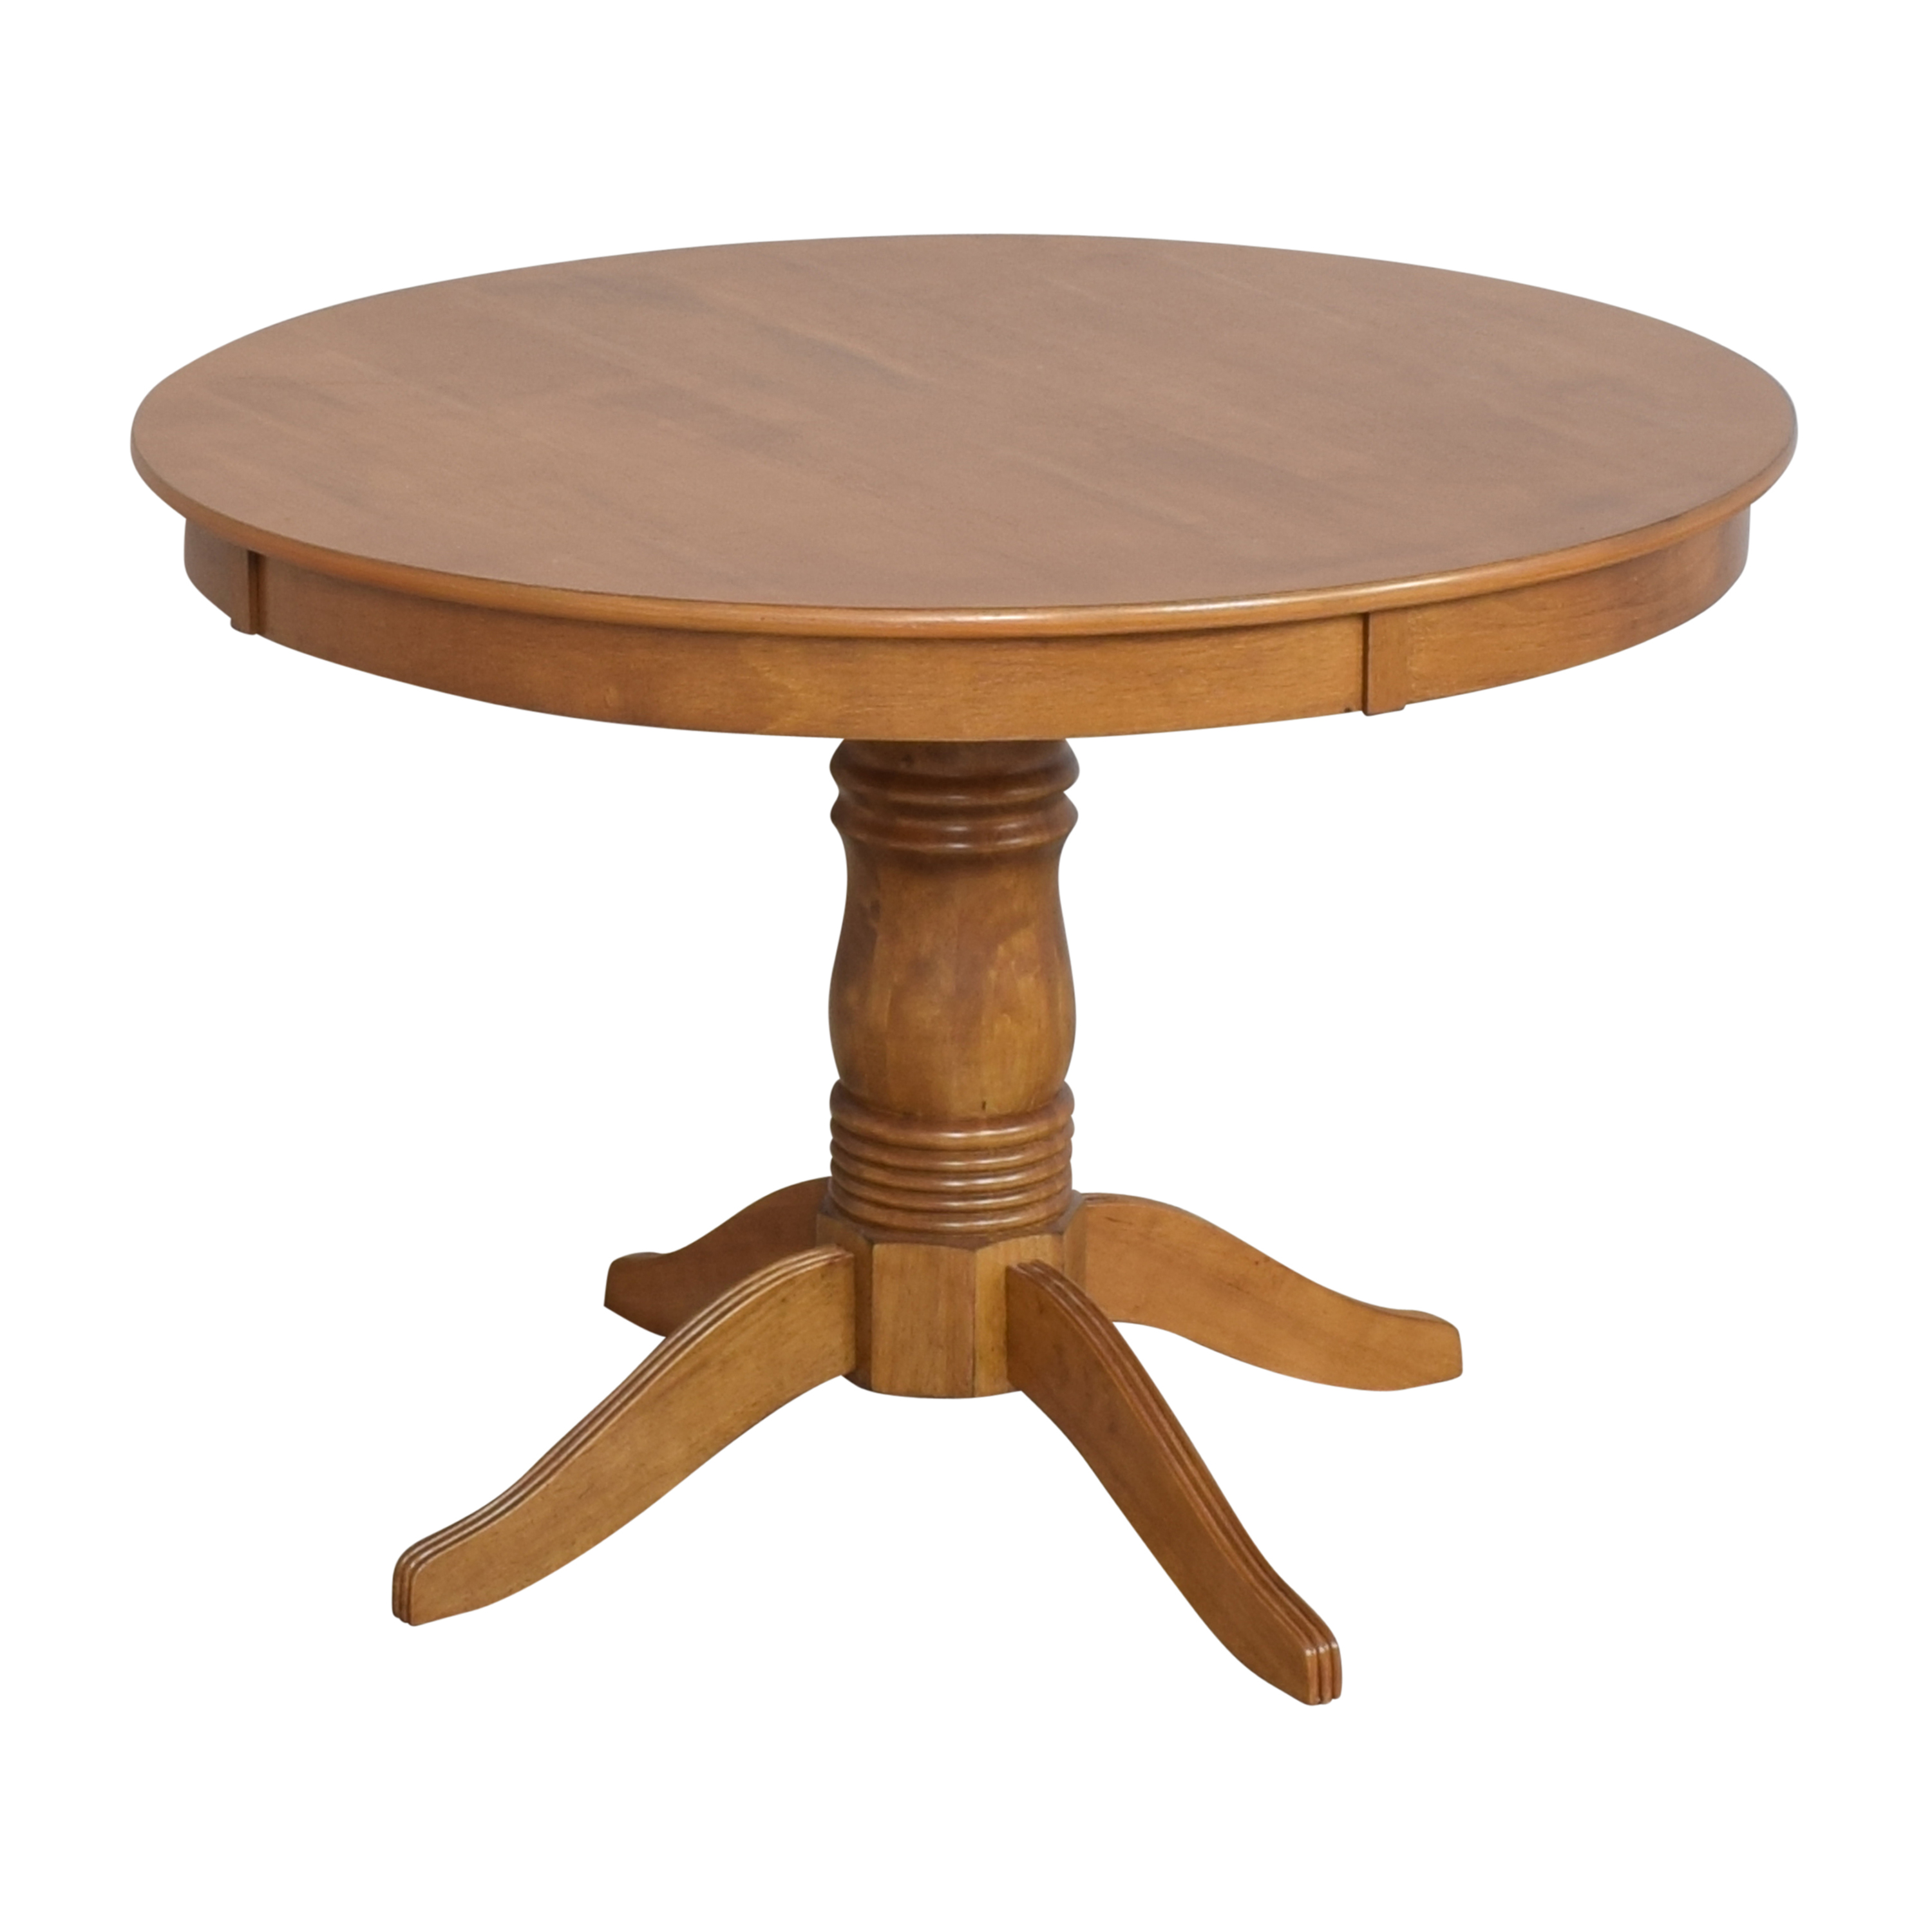 Round Pedestal Dining Table dimensions